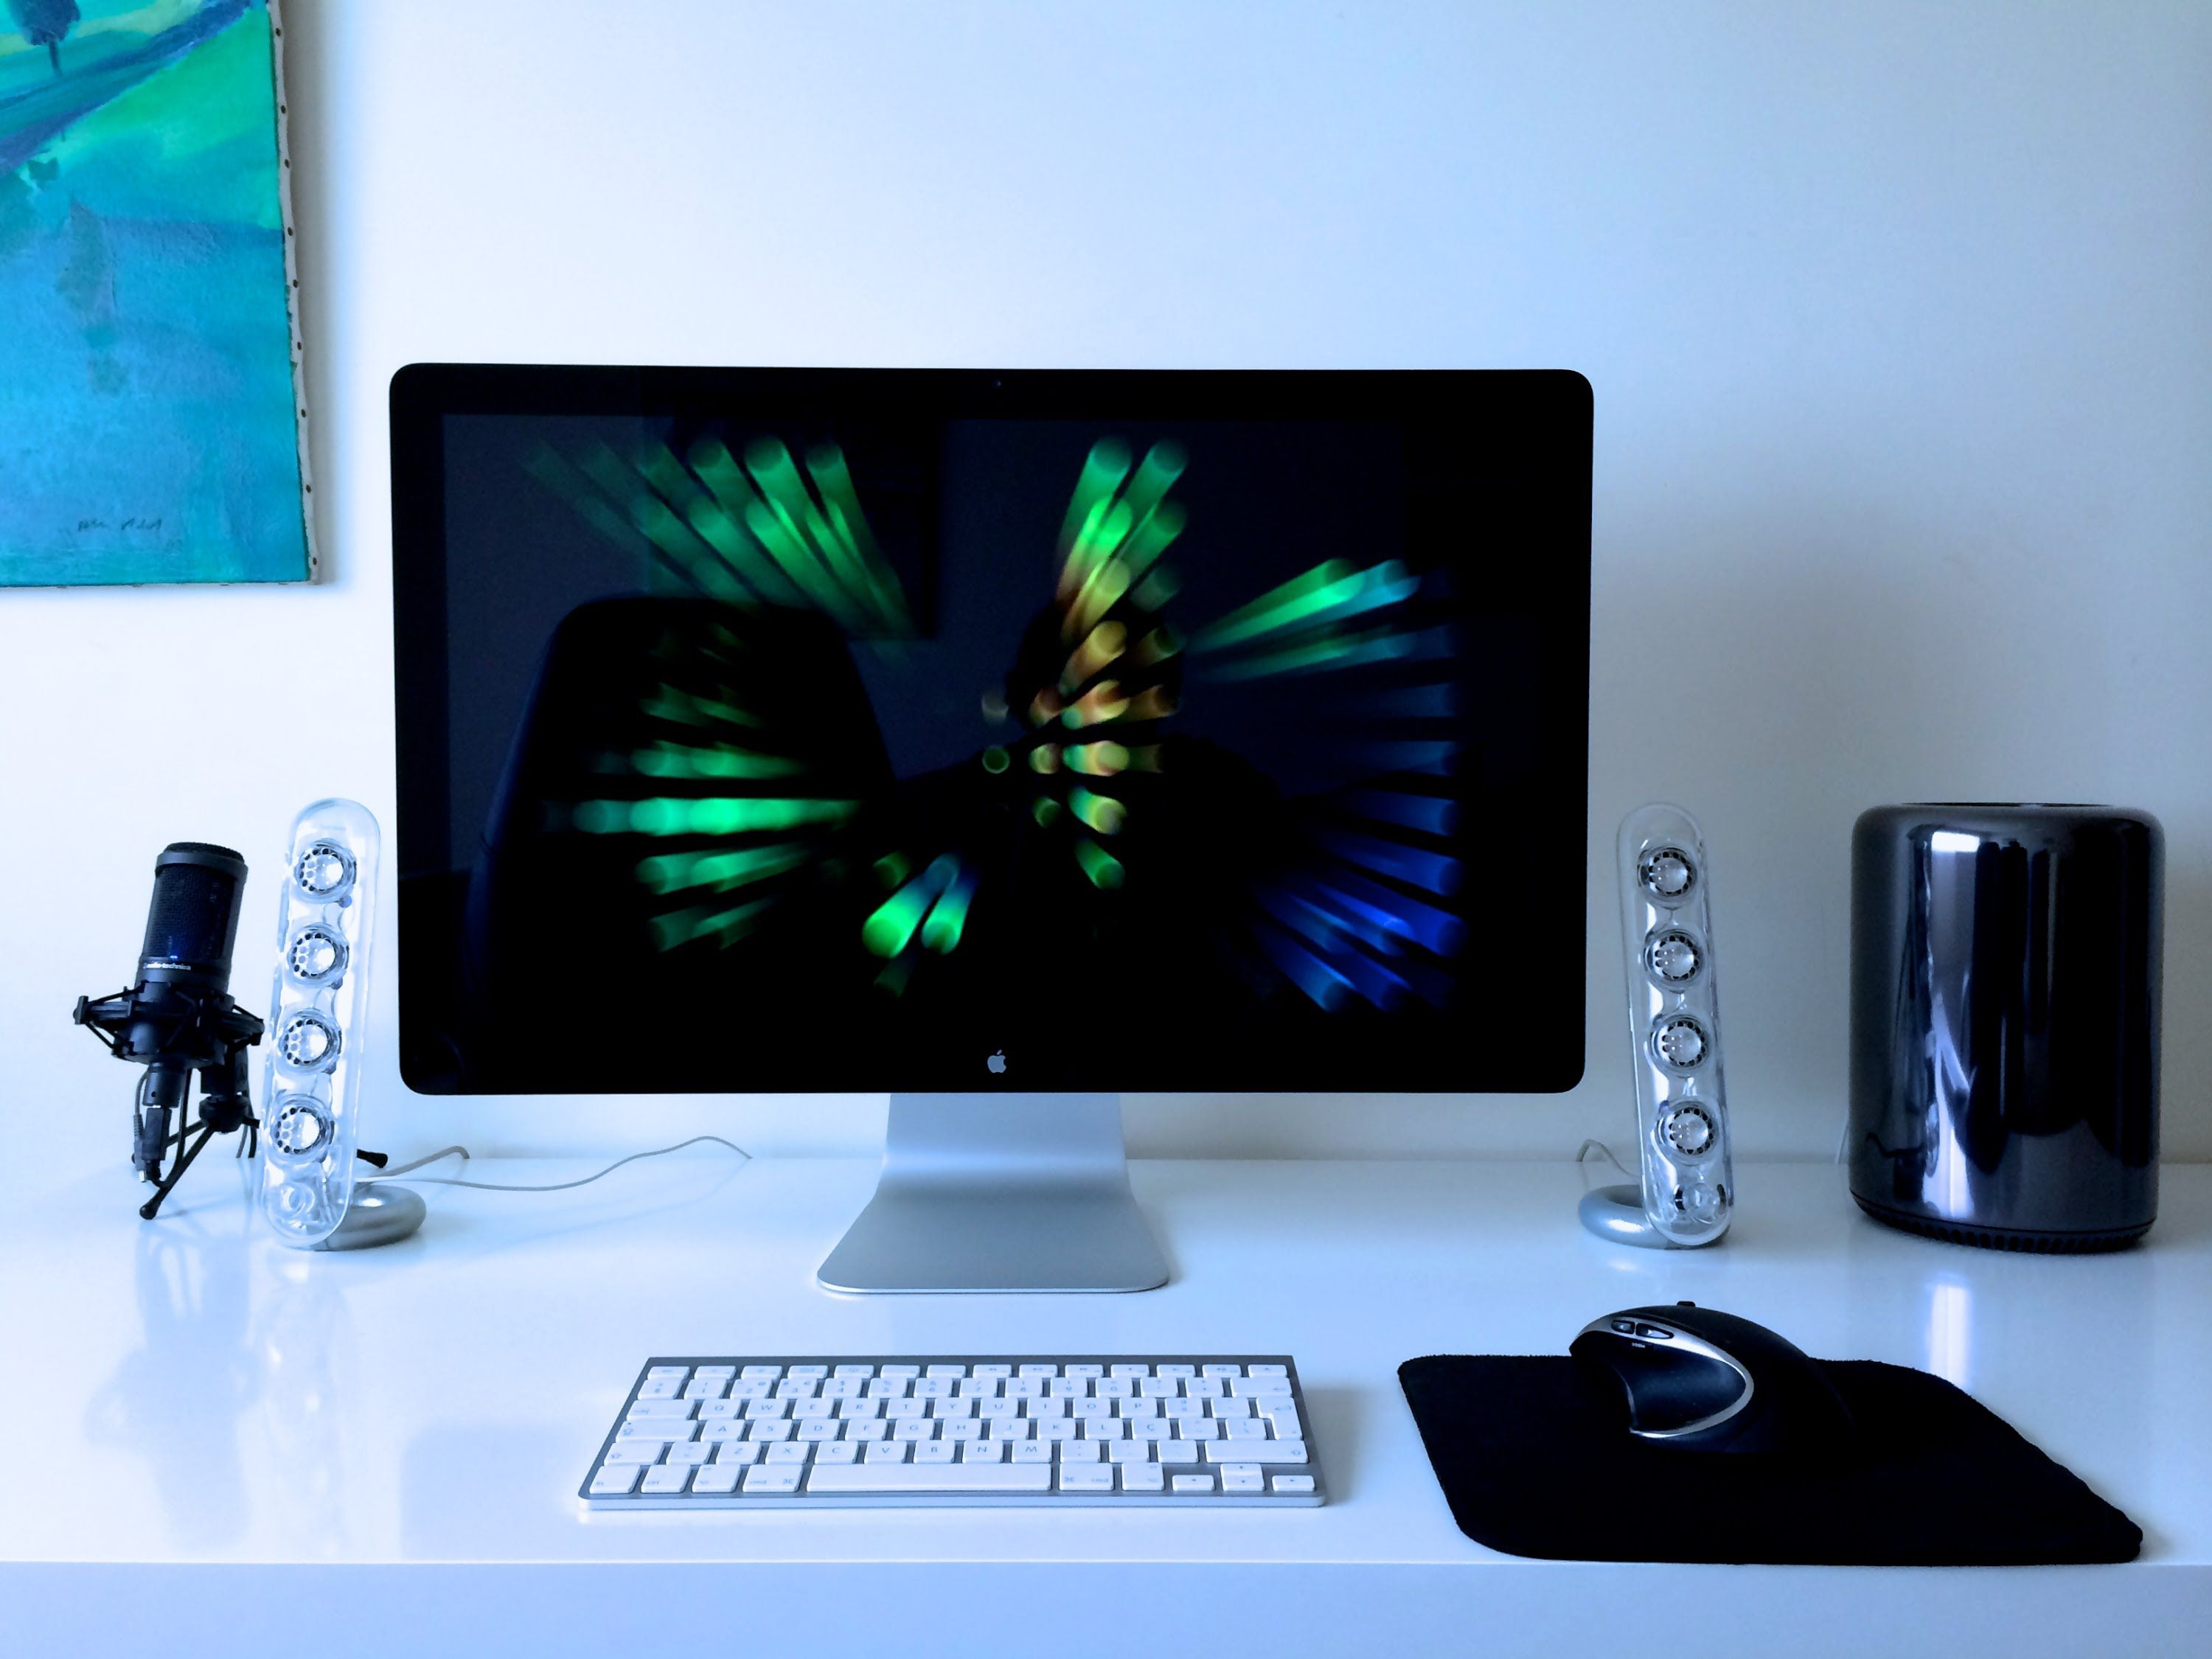 Mac Pro 2013 Unboxing And Setup Playstation 4